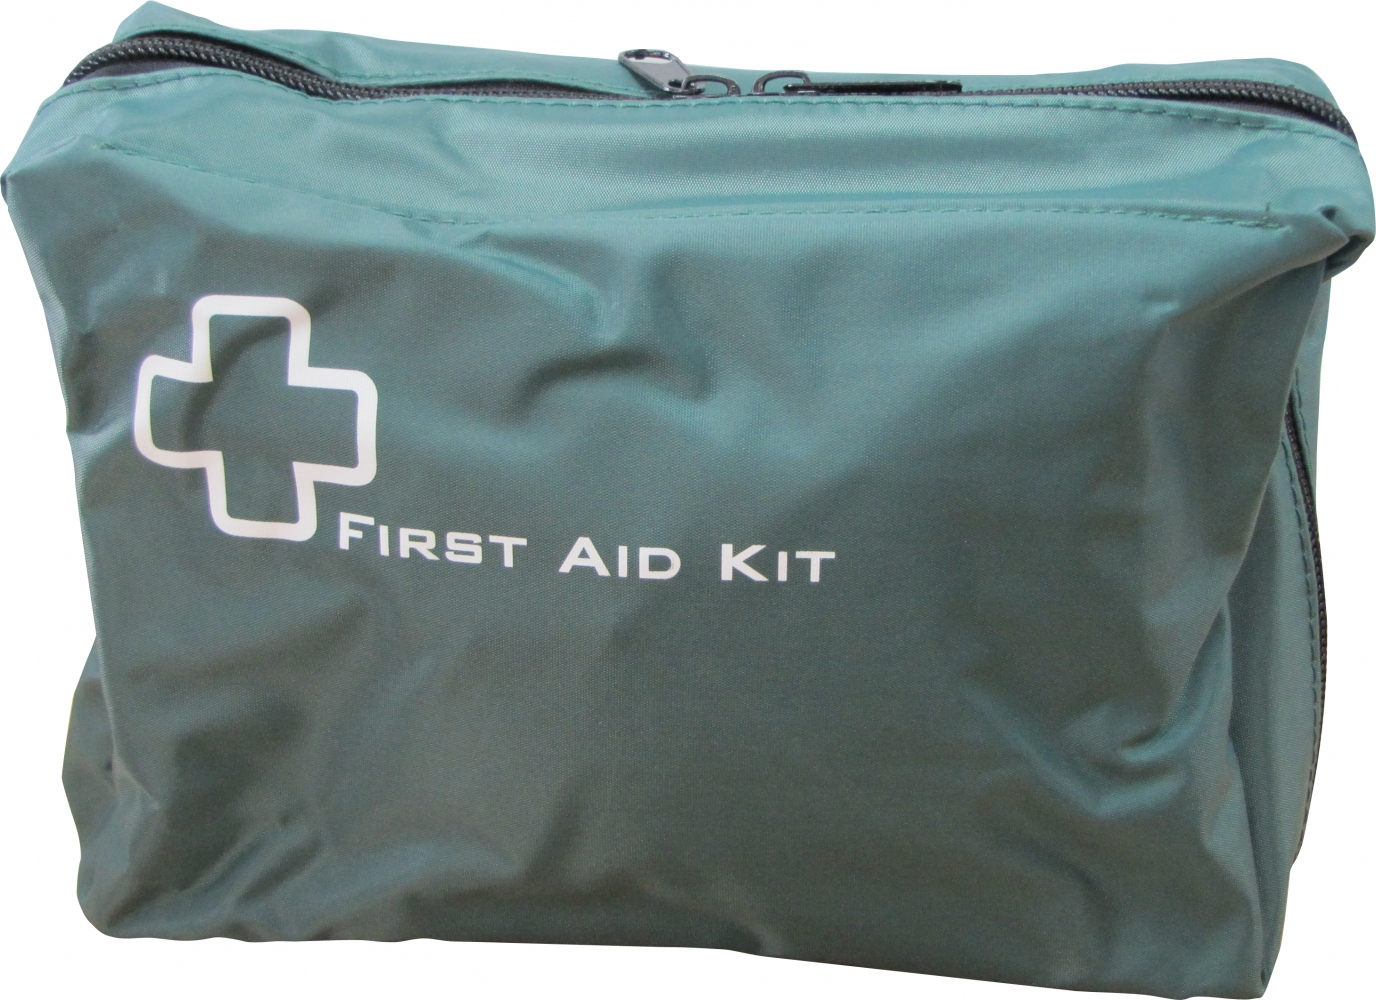 FIRST AID KIT - LONE WORKER/VEHICLE 2 SOFT PACK